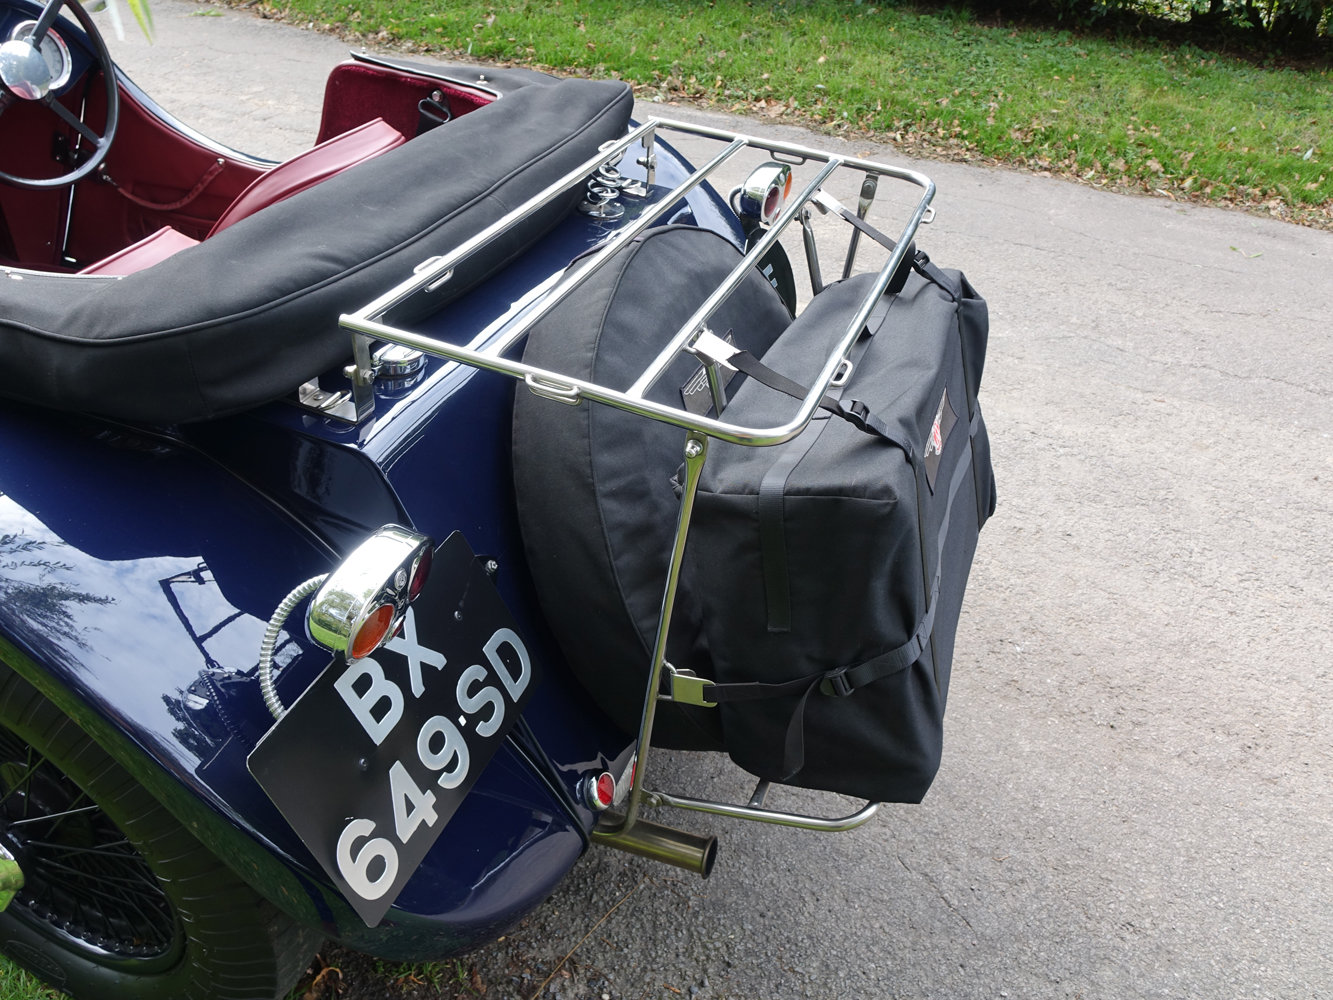 Suffolk Jaguar SS100 4.2 with Certificat D'imatricuation For Sale (picture 5 of 6)